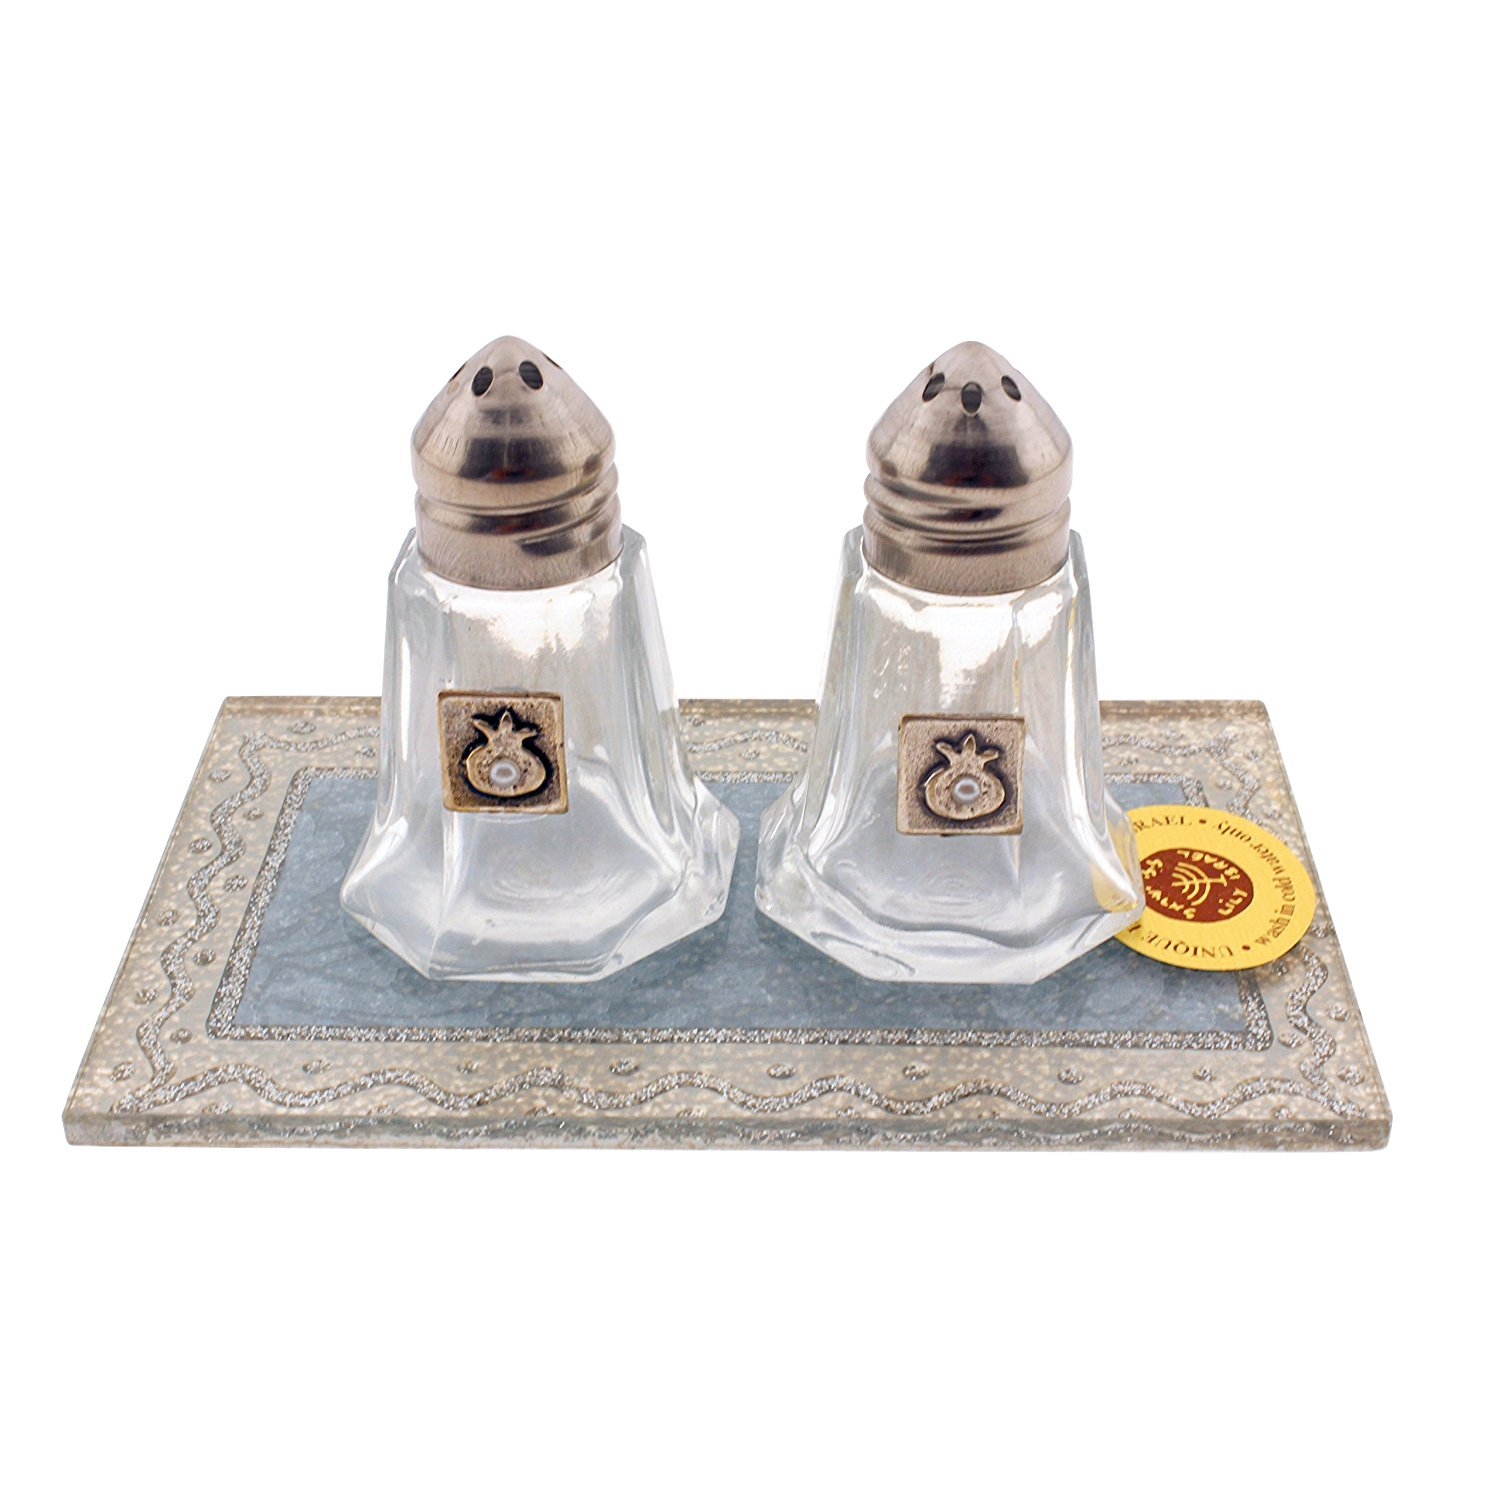 Stylish Glass Salt and Pepper Shakers with Tray Featuring Beautiful Art Designs Judaica Mega Mall